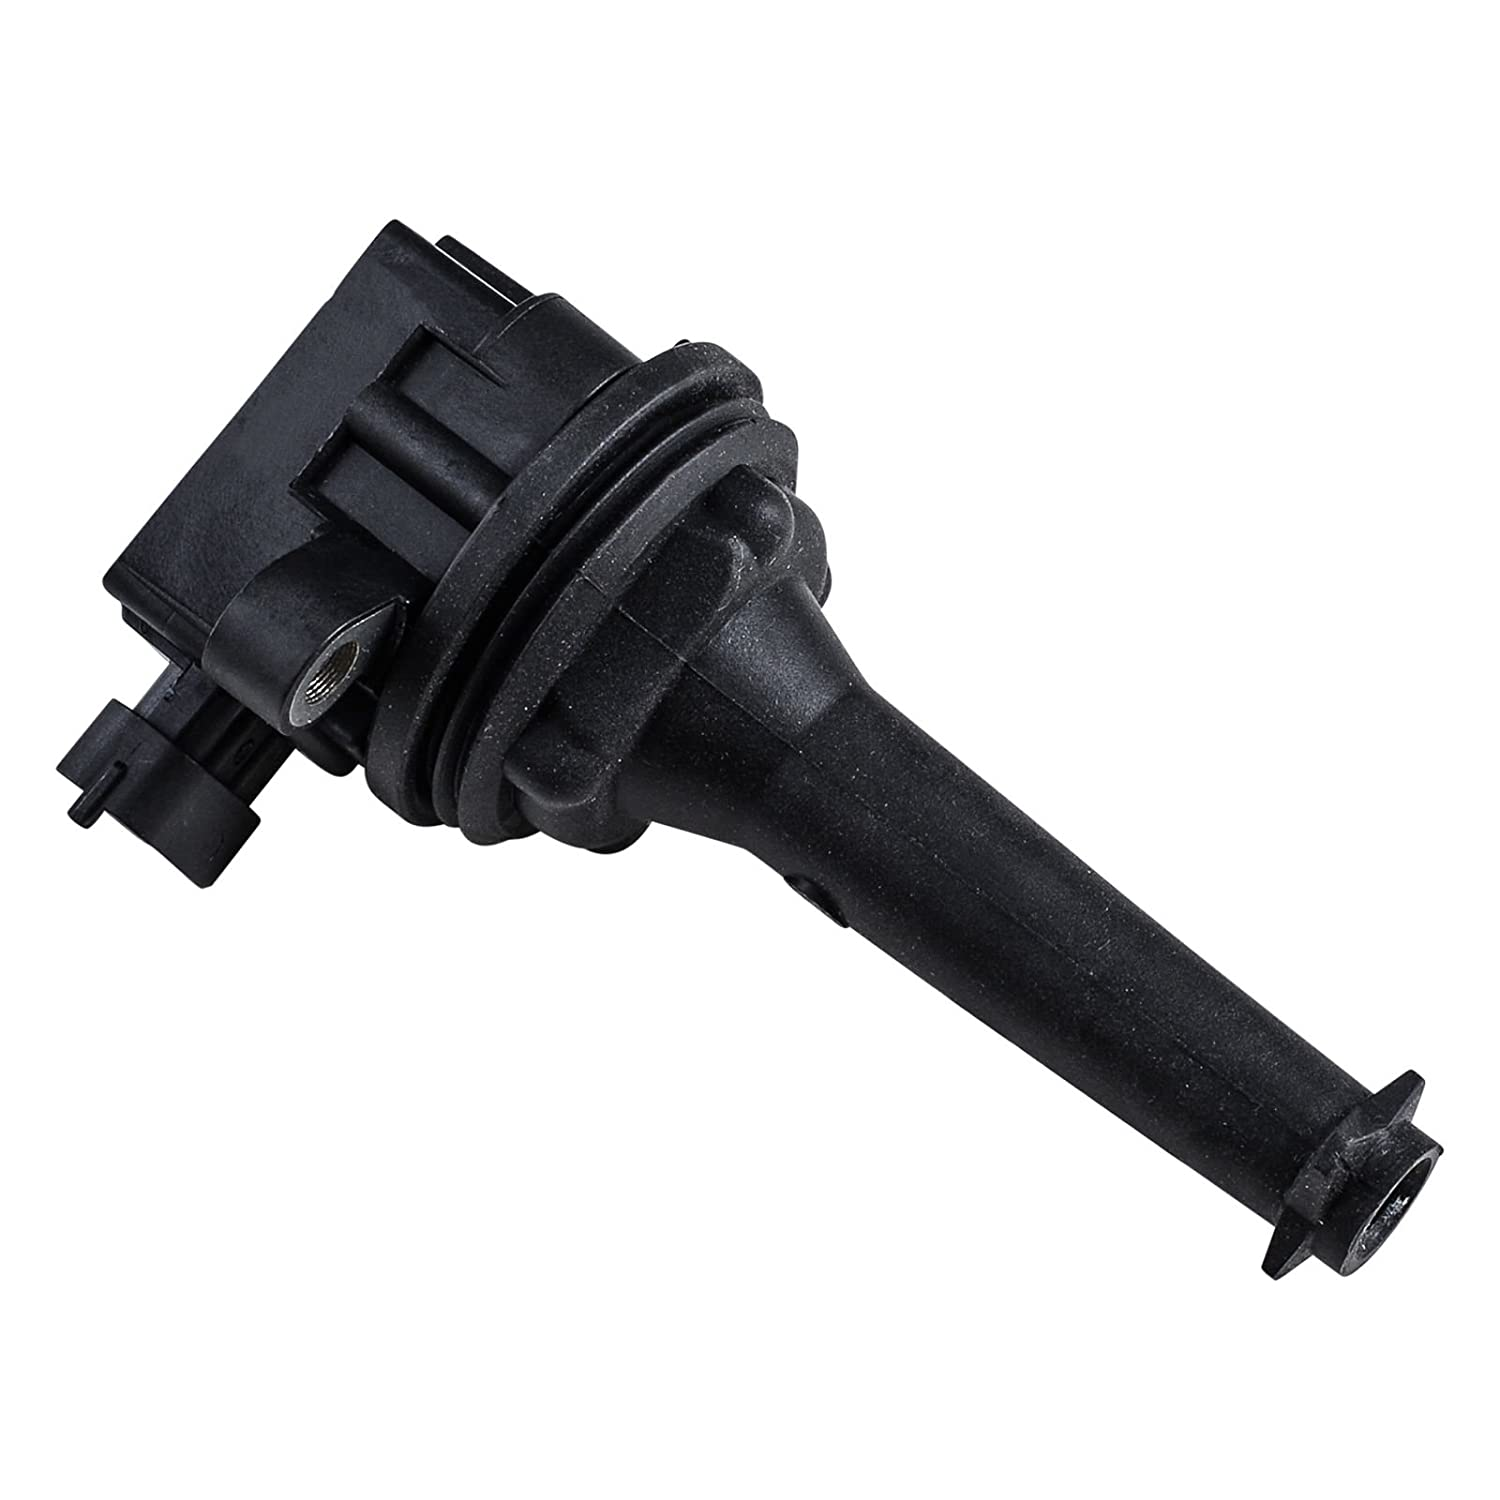 Set Of 5 Ignition Coil For Volvo S60 C70 S70 V70 Xc70 2000 Cylinder Wiring Diagram S80 Xc90 Series Fits Uf 341 Uf341 Automotive